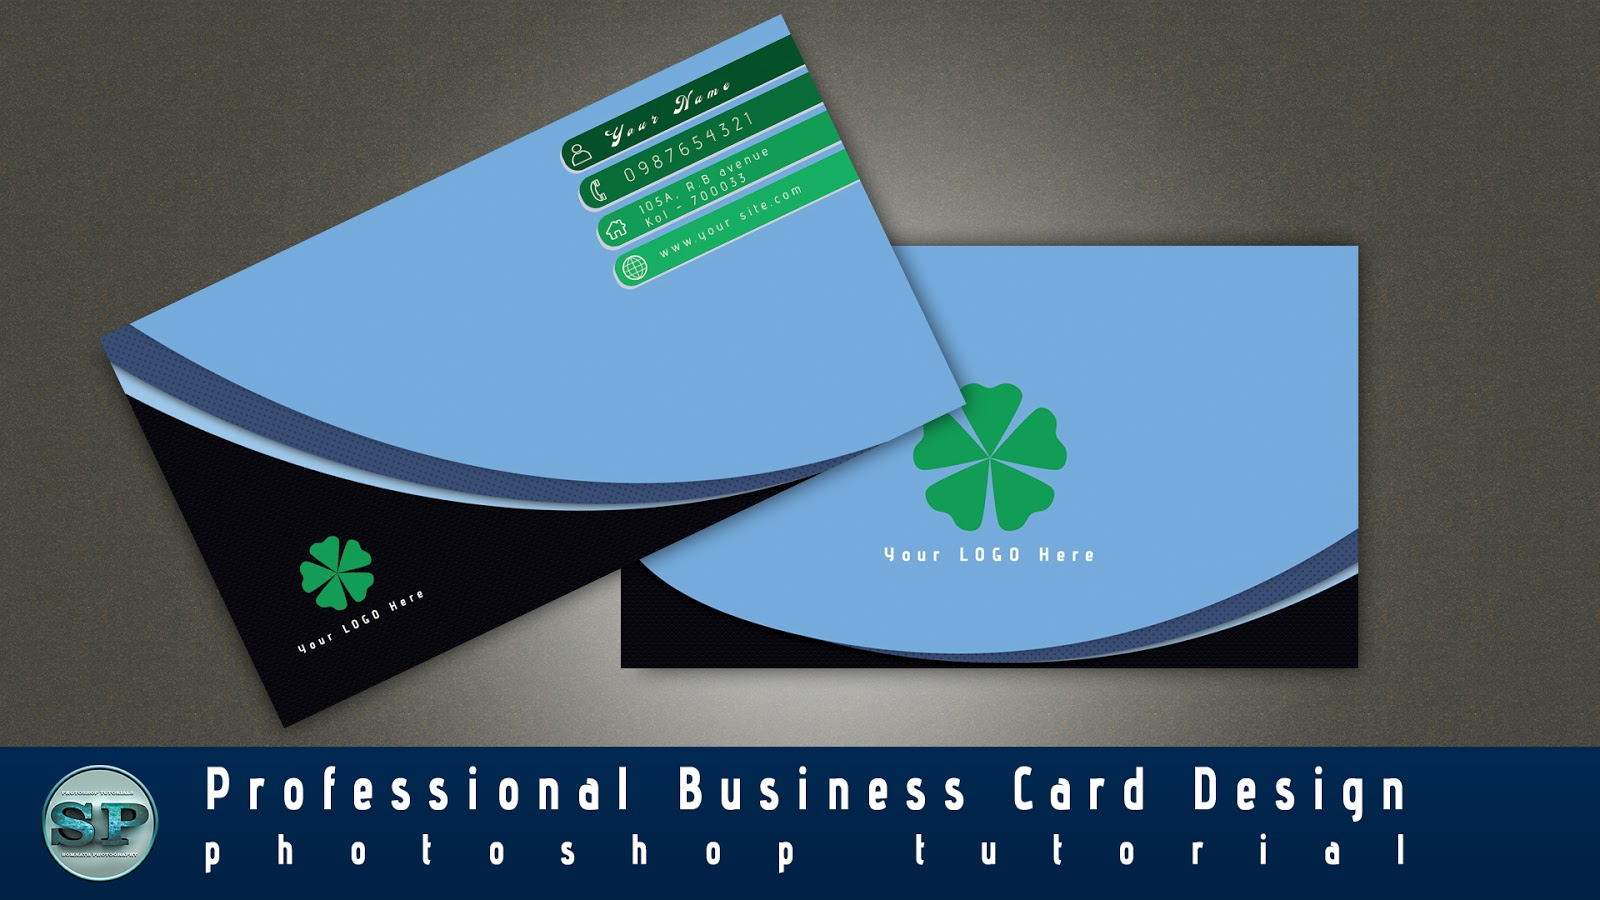 Photoshop tutorials 2017 how to design professional for How to make business cards in photoshop cs6